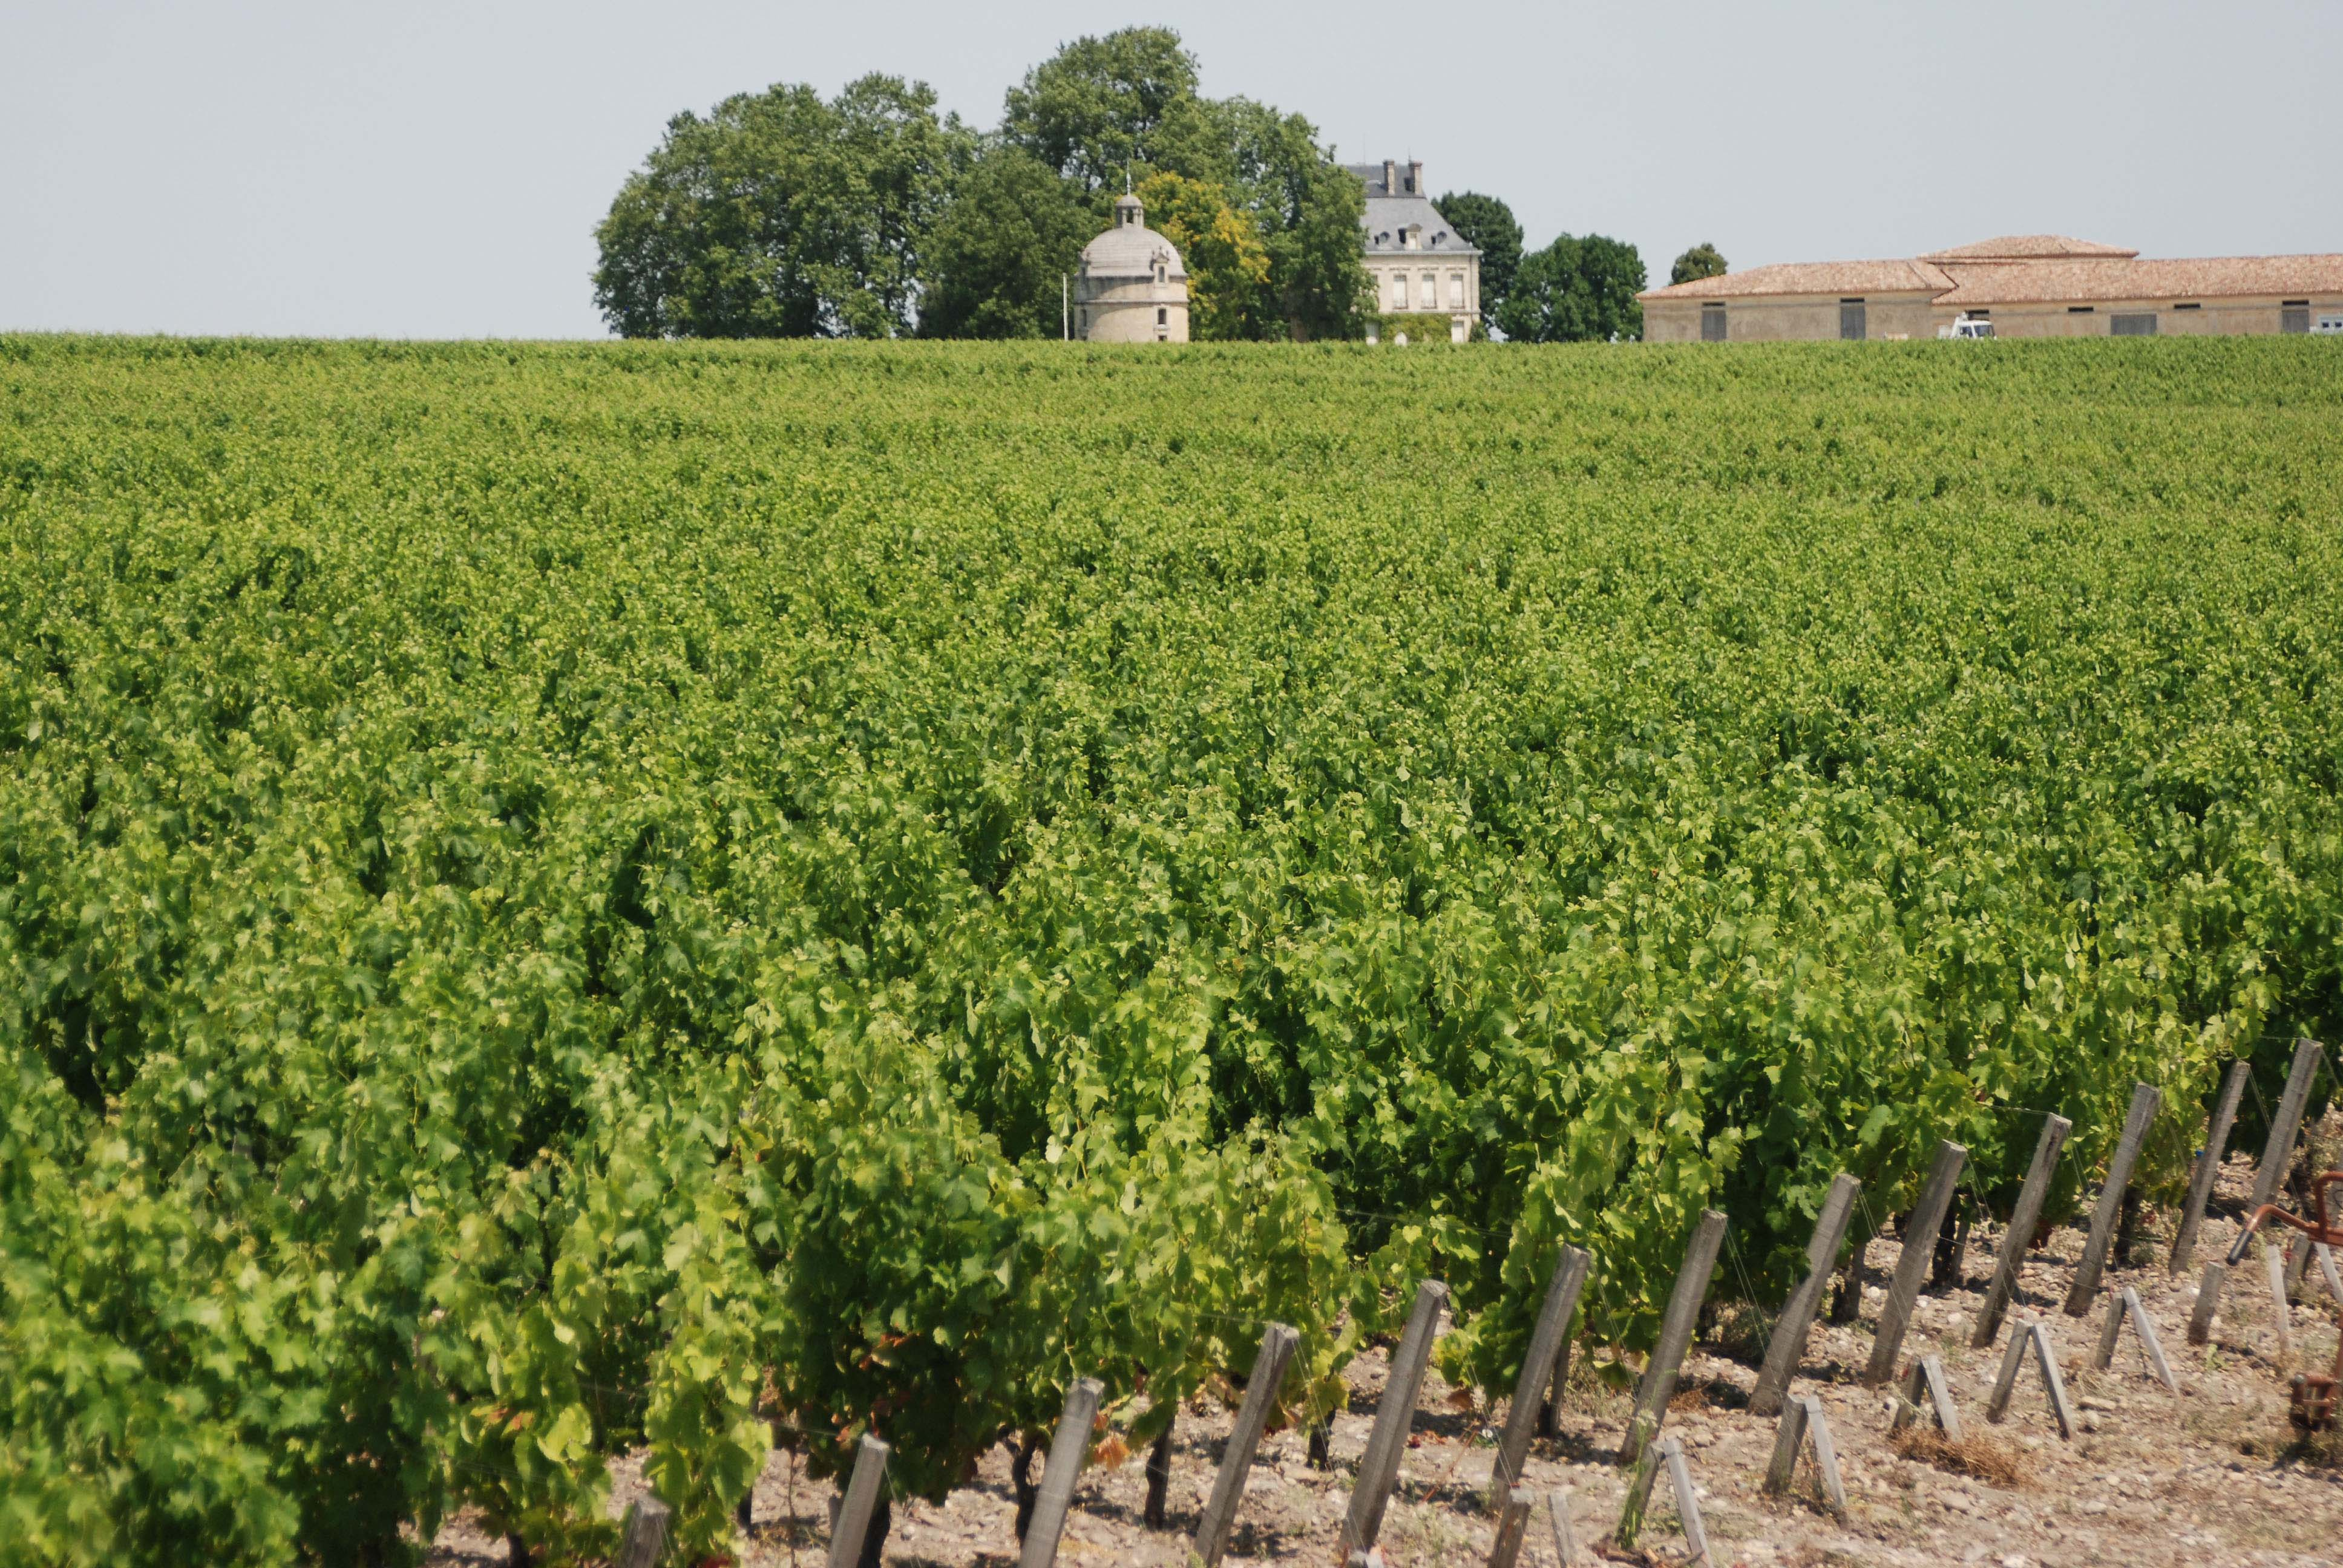 World famous vineyards in the Bordeaux region